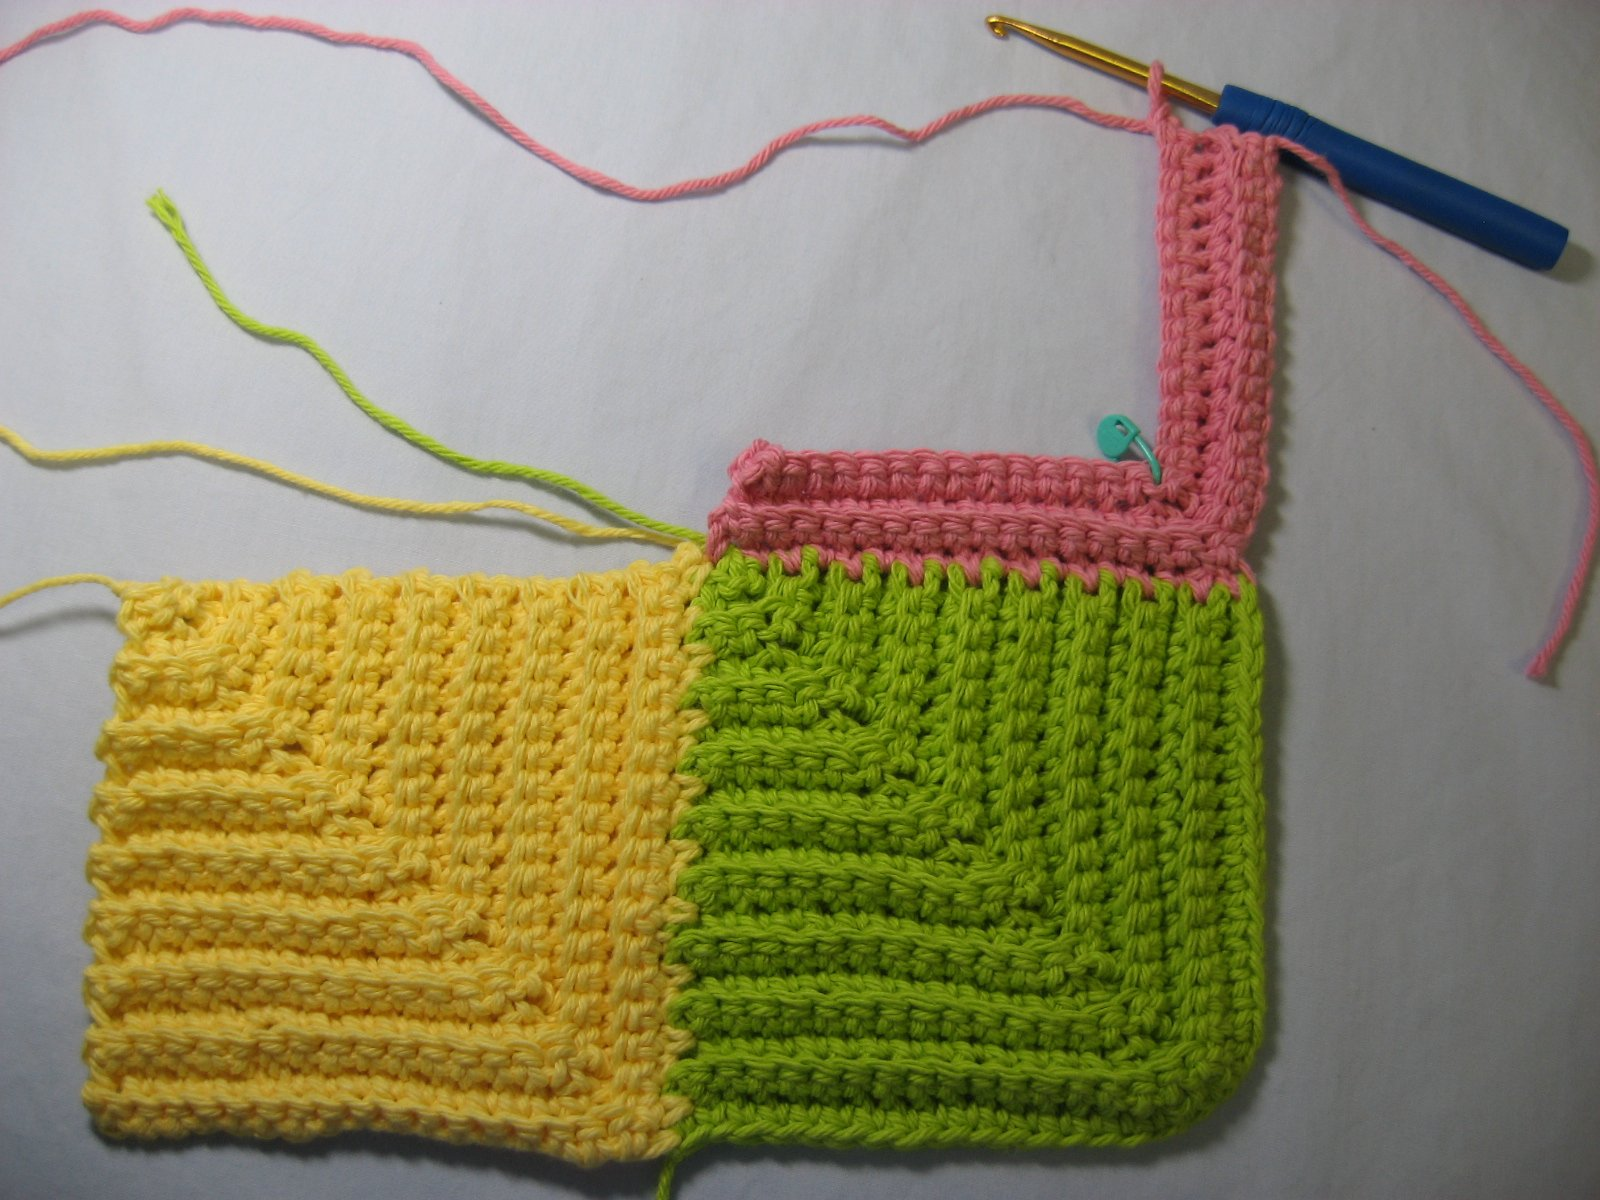 Hooked on Needles: Mitered Square Crocheted Baby Blanket ...